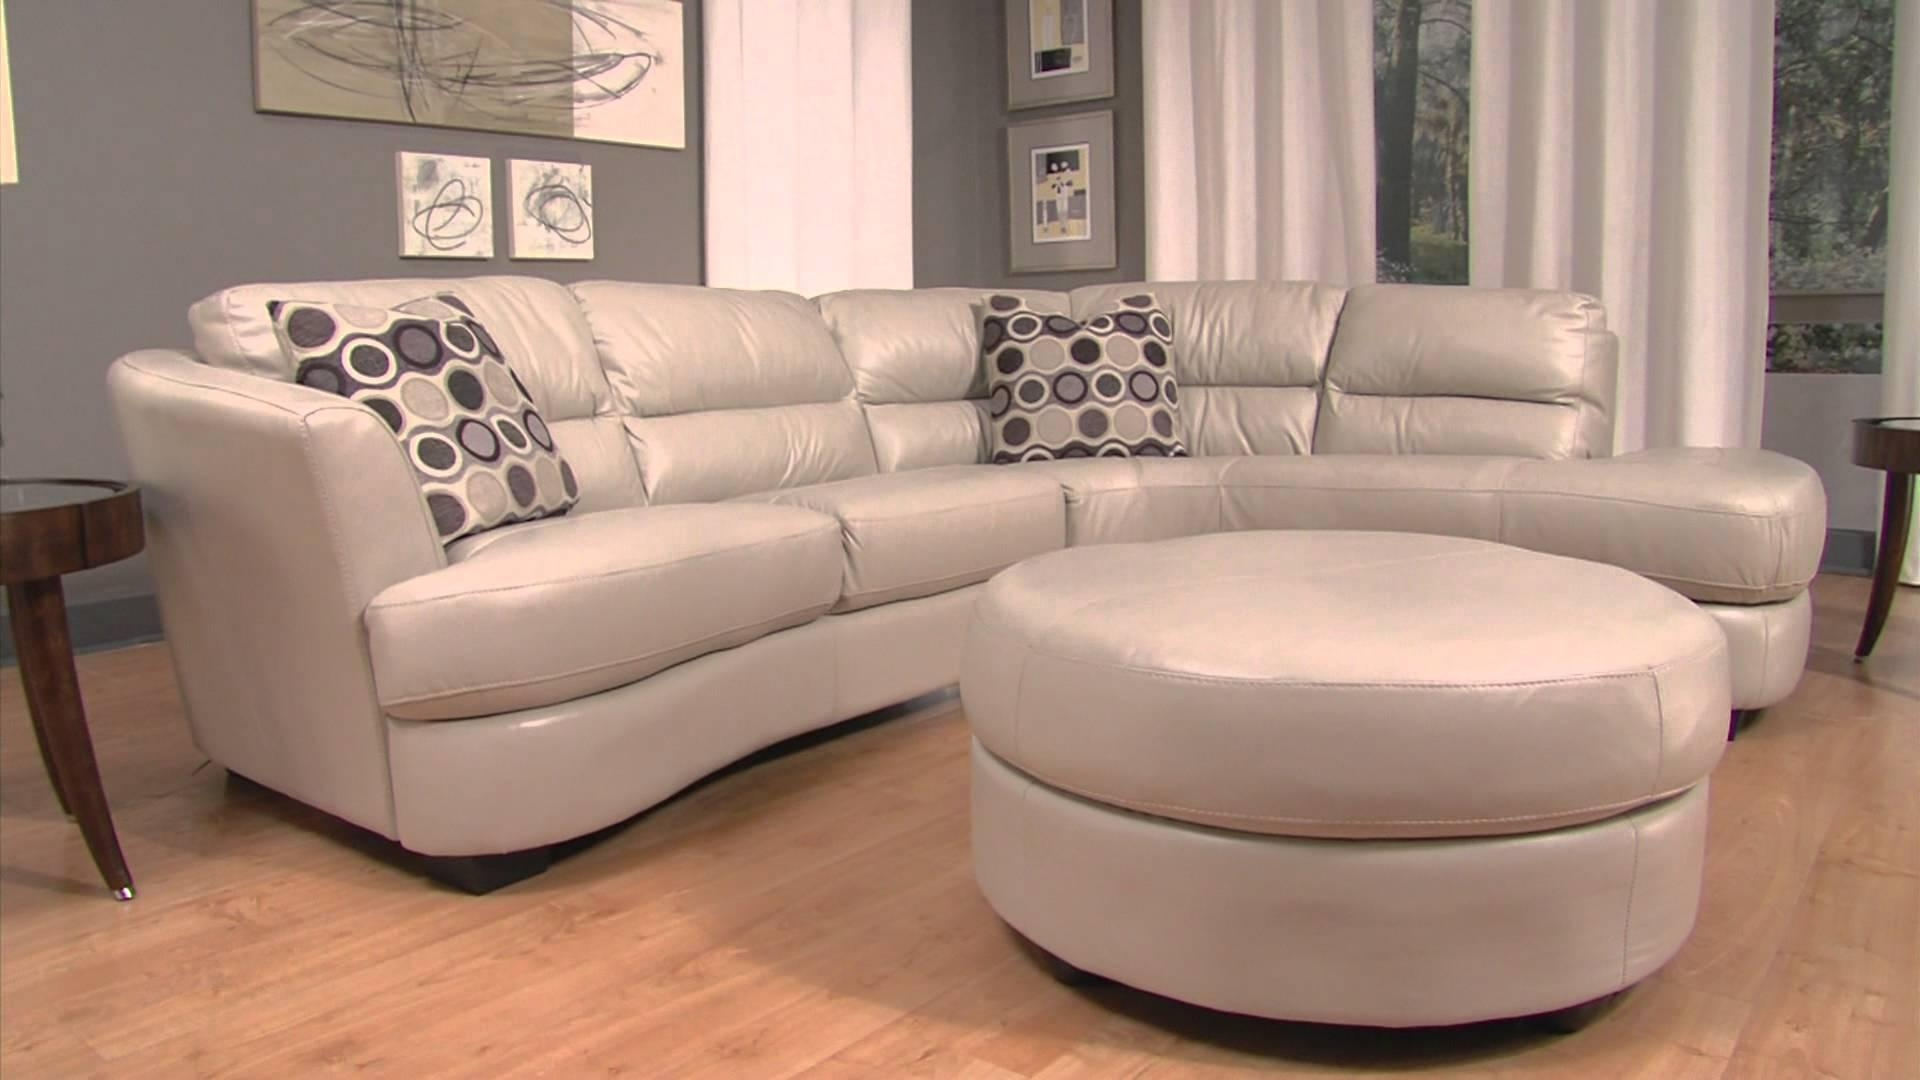 Berkline Andlynn Sofa Set Costco 3 Berkline Andlynn Sofa Set Within Berkline Couches (Image 2 of 20)